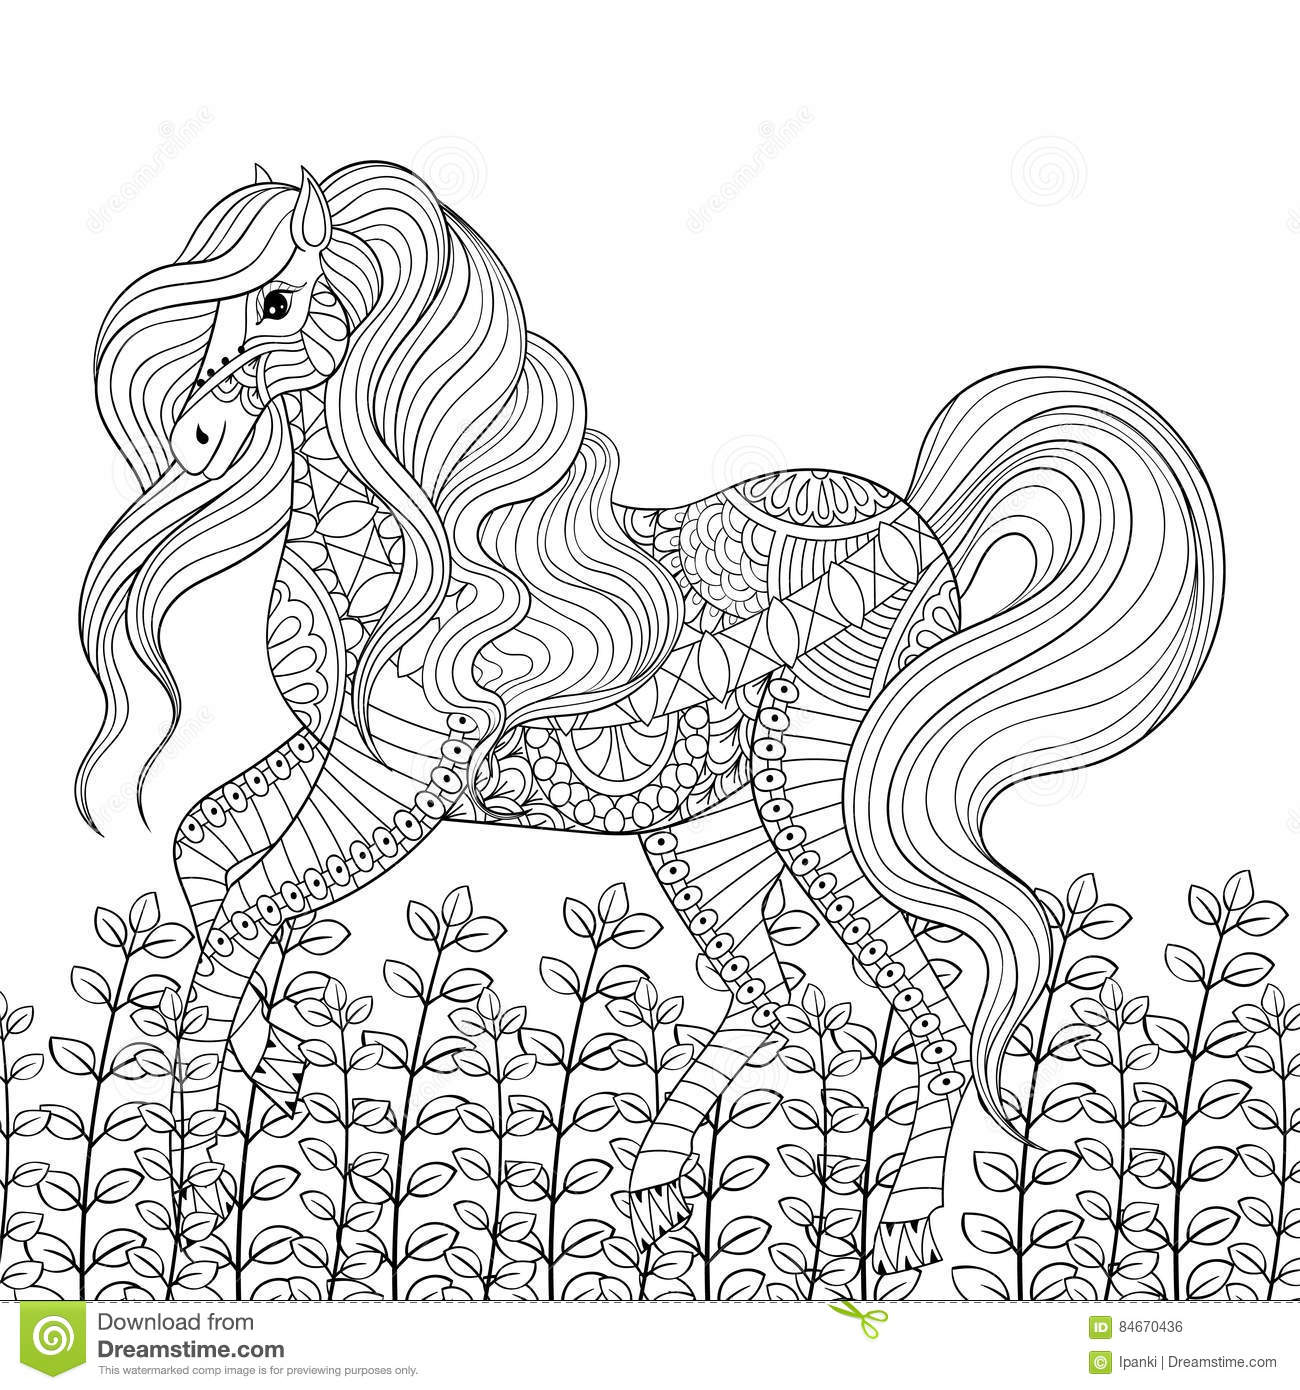 Racing Horse Adult Anti Stress Coloring Page. Hand Drawn Zentang ...